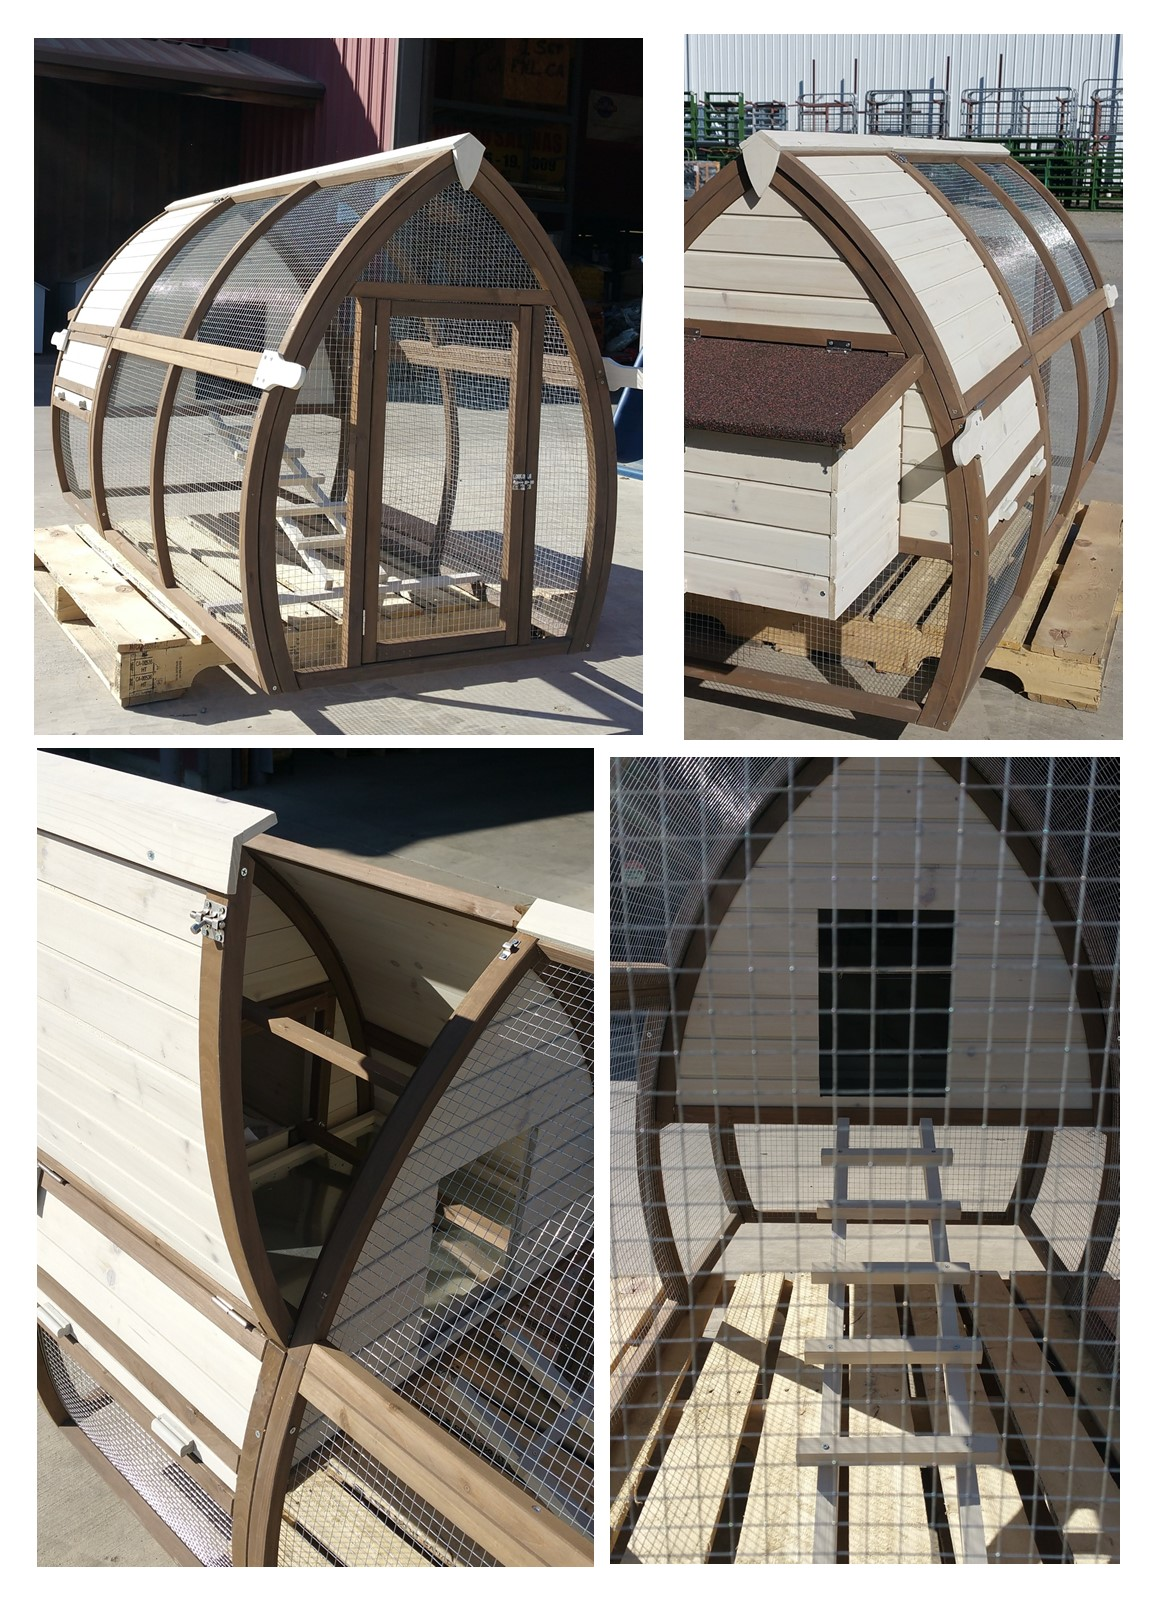 picture-chicken-hutch-open-air-coop-back-yard-charm-by-ware-details-1234.jpg